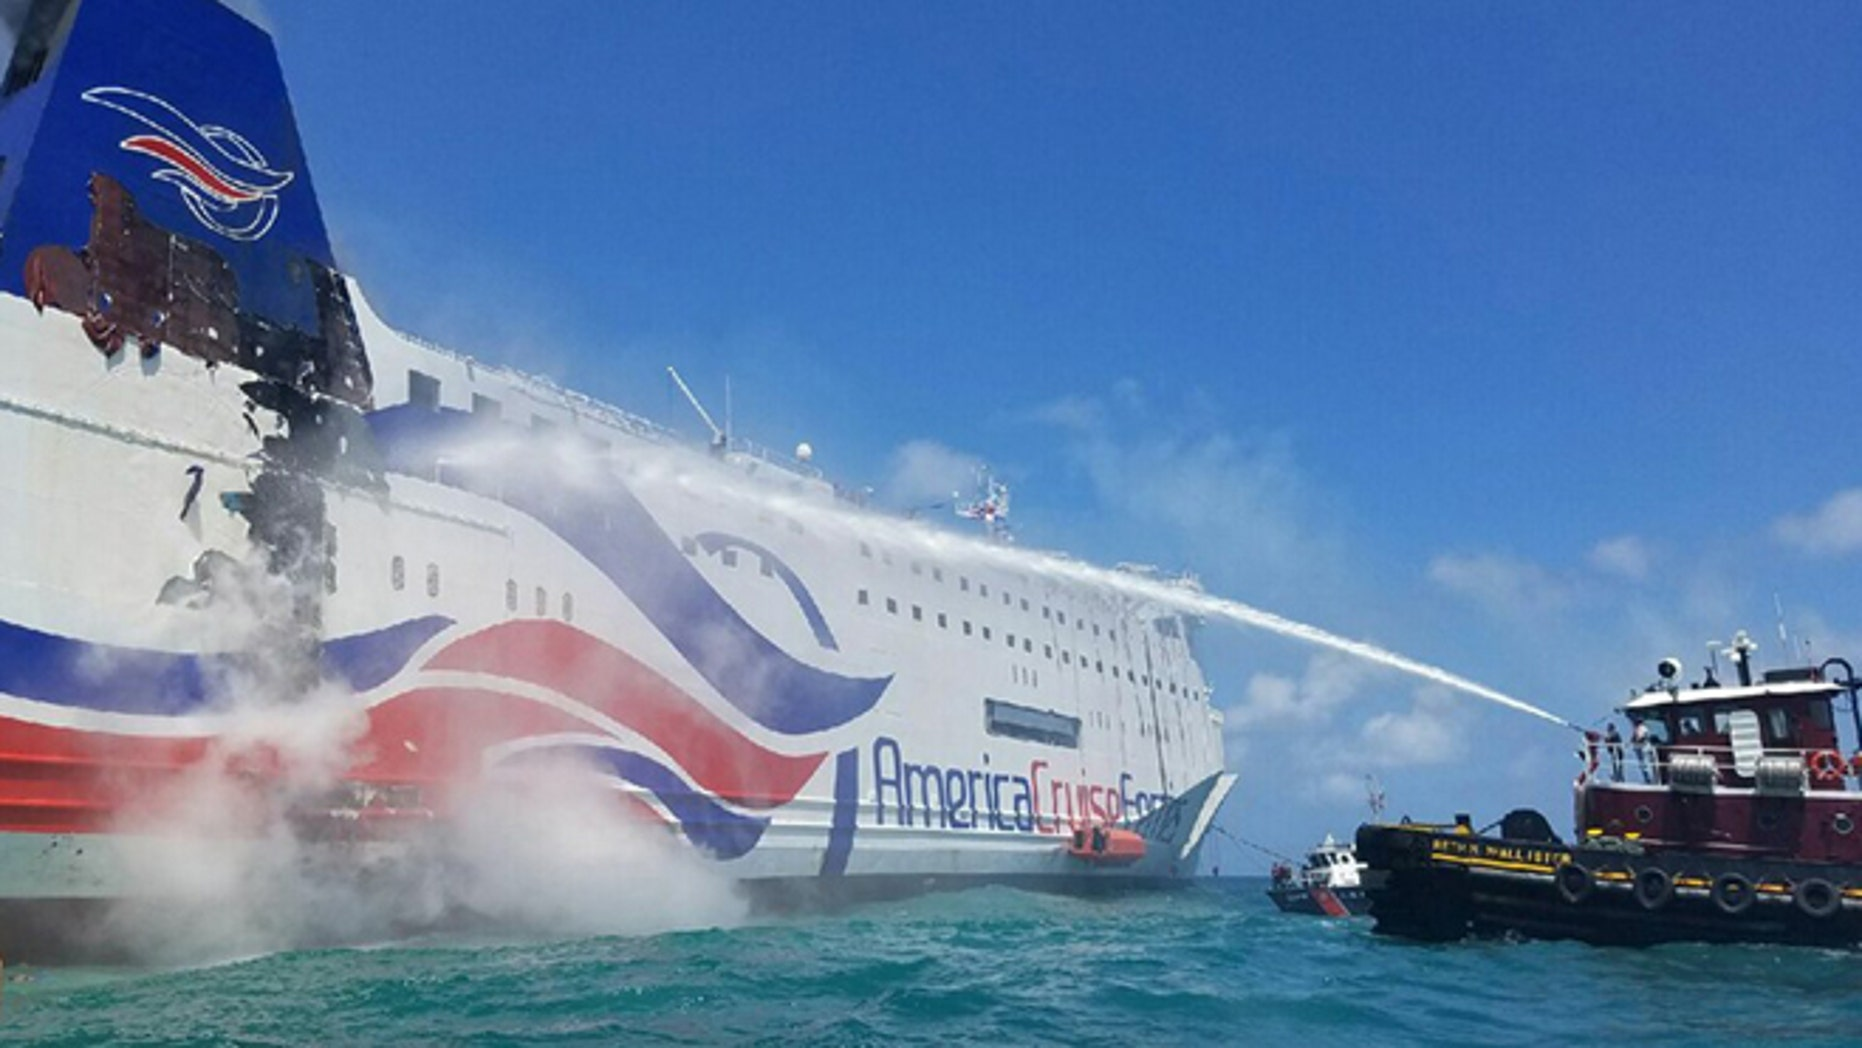 In this photo provided by the U.S. Coast Guard, a local San Juan, Puerto Rico-based tug crew uses a fire hose to cool the hull of the Caribbean Fantasy cruise ship that caught fire, a mile from San Juan Harbor, Puerto Rico, Wednesday, Aug. 17, 2016. More than 500 passengers and crew were evacuated from a burning ship off Puerto Rico's north coast and many required medical care, though there were no reported fatalities or life-threatening injuries. (Petty Officer 2nd Class Jonathan Lally/US Coast Guard via AP)